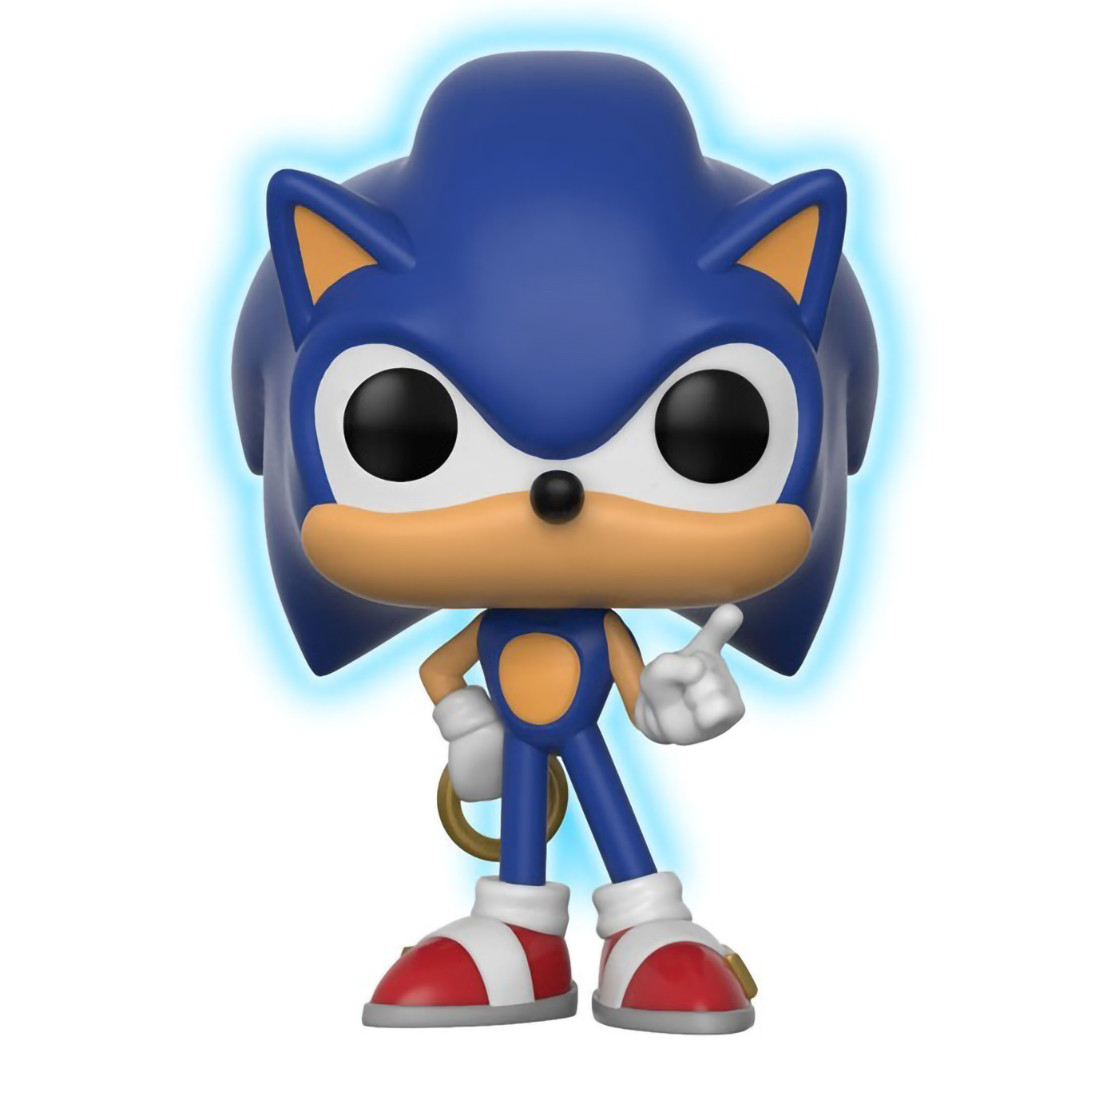 Sonic W Ring Glow In Dark Toys R Us Exclusive Funko Pop Games X Sonic The Hedgehog Vinyl Figure 283 26572 Toysdiva